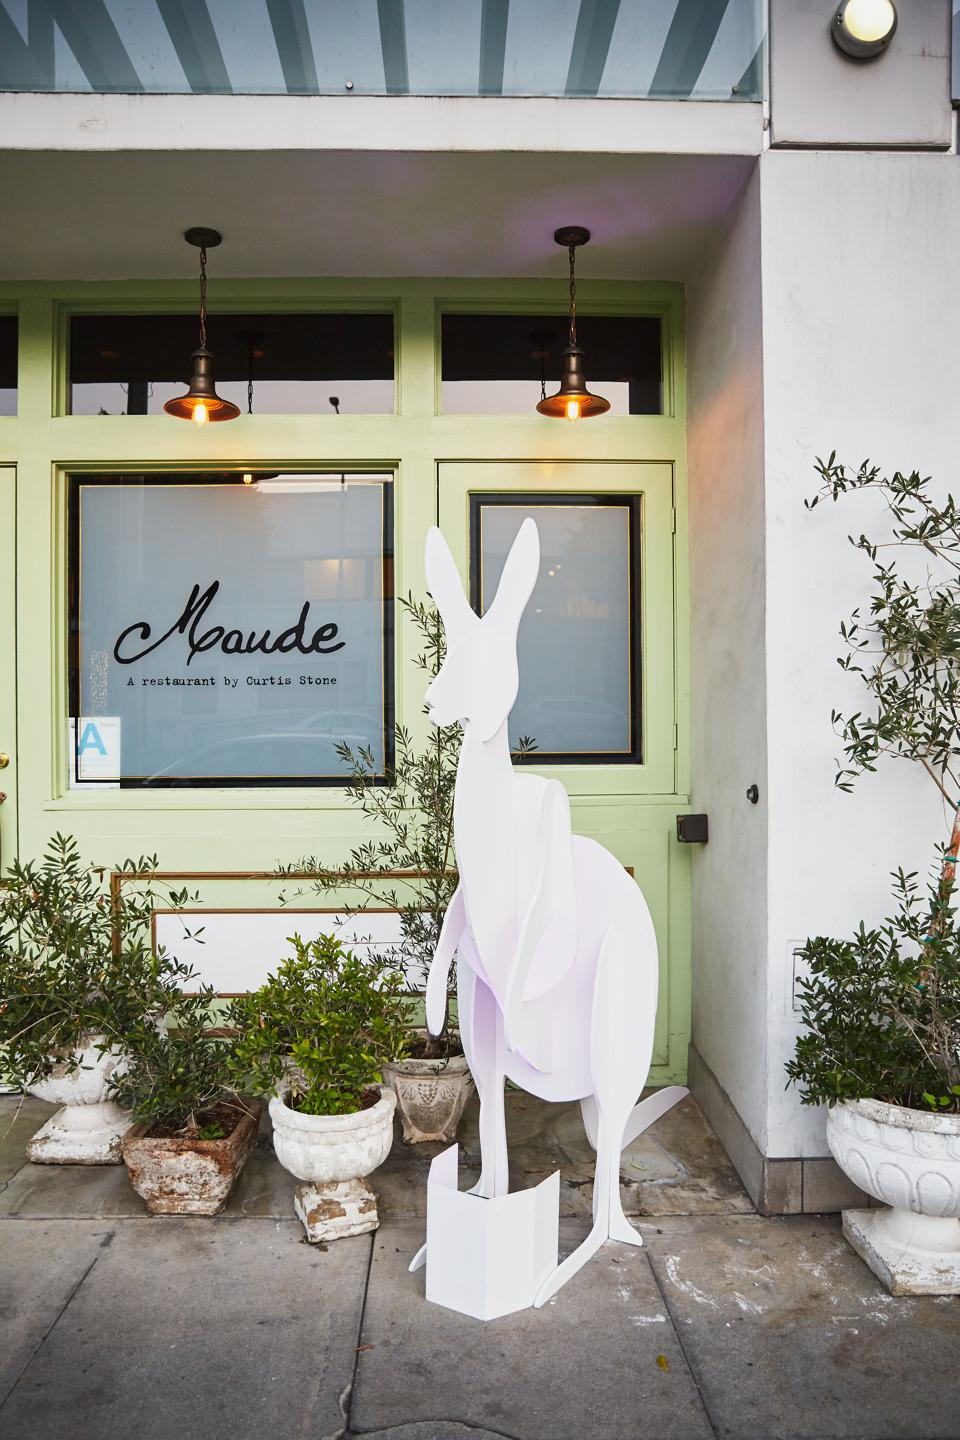 Curtis Stone's love for his home country is present on Maude's new menu